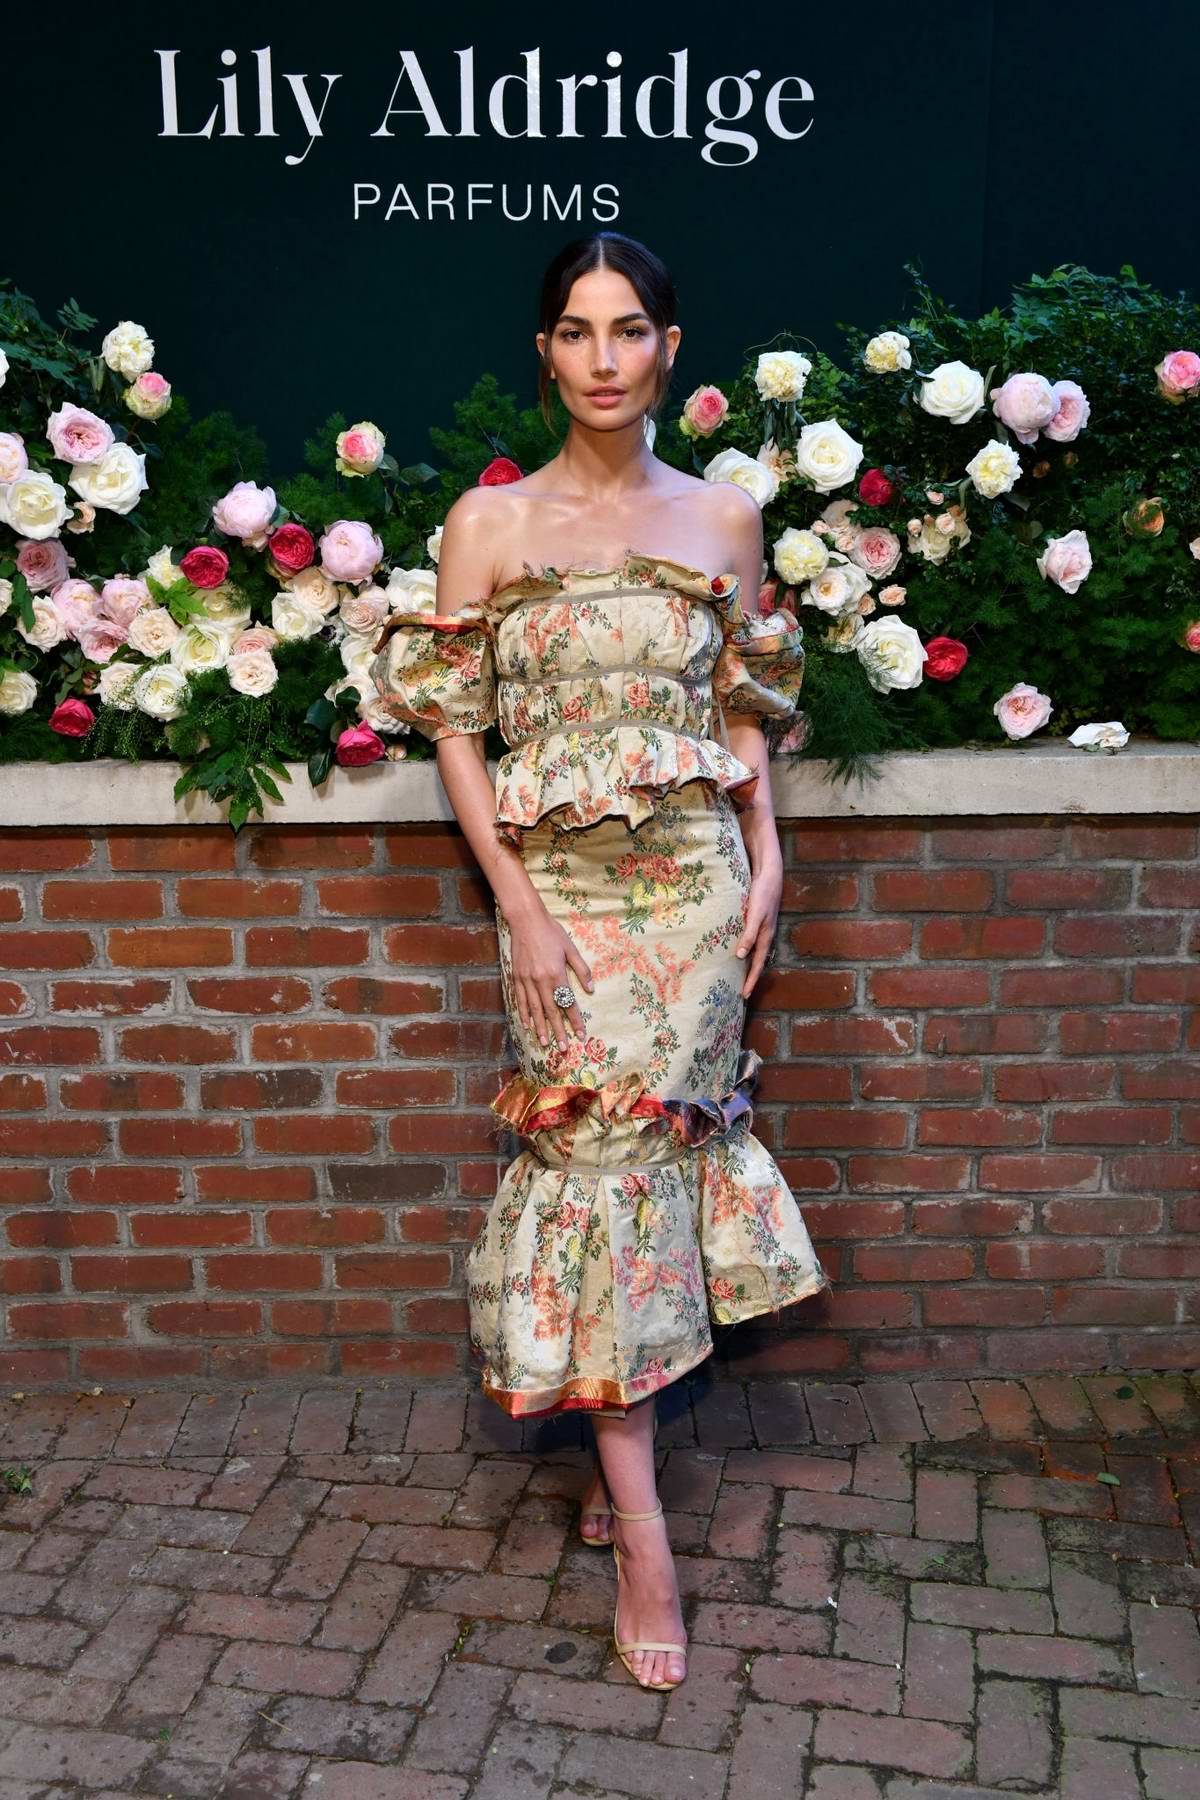 Lily Aldridge attends her 'Lily Aldridge Parfums' launch event at The Bowery Terrace in New York City